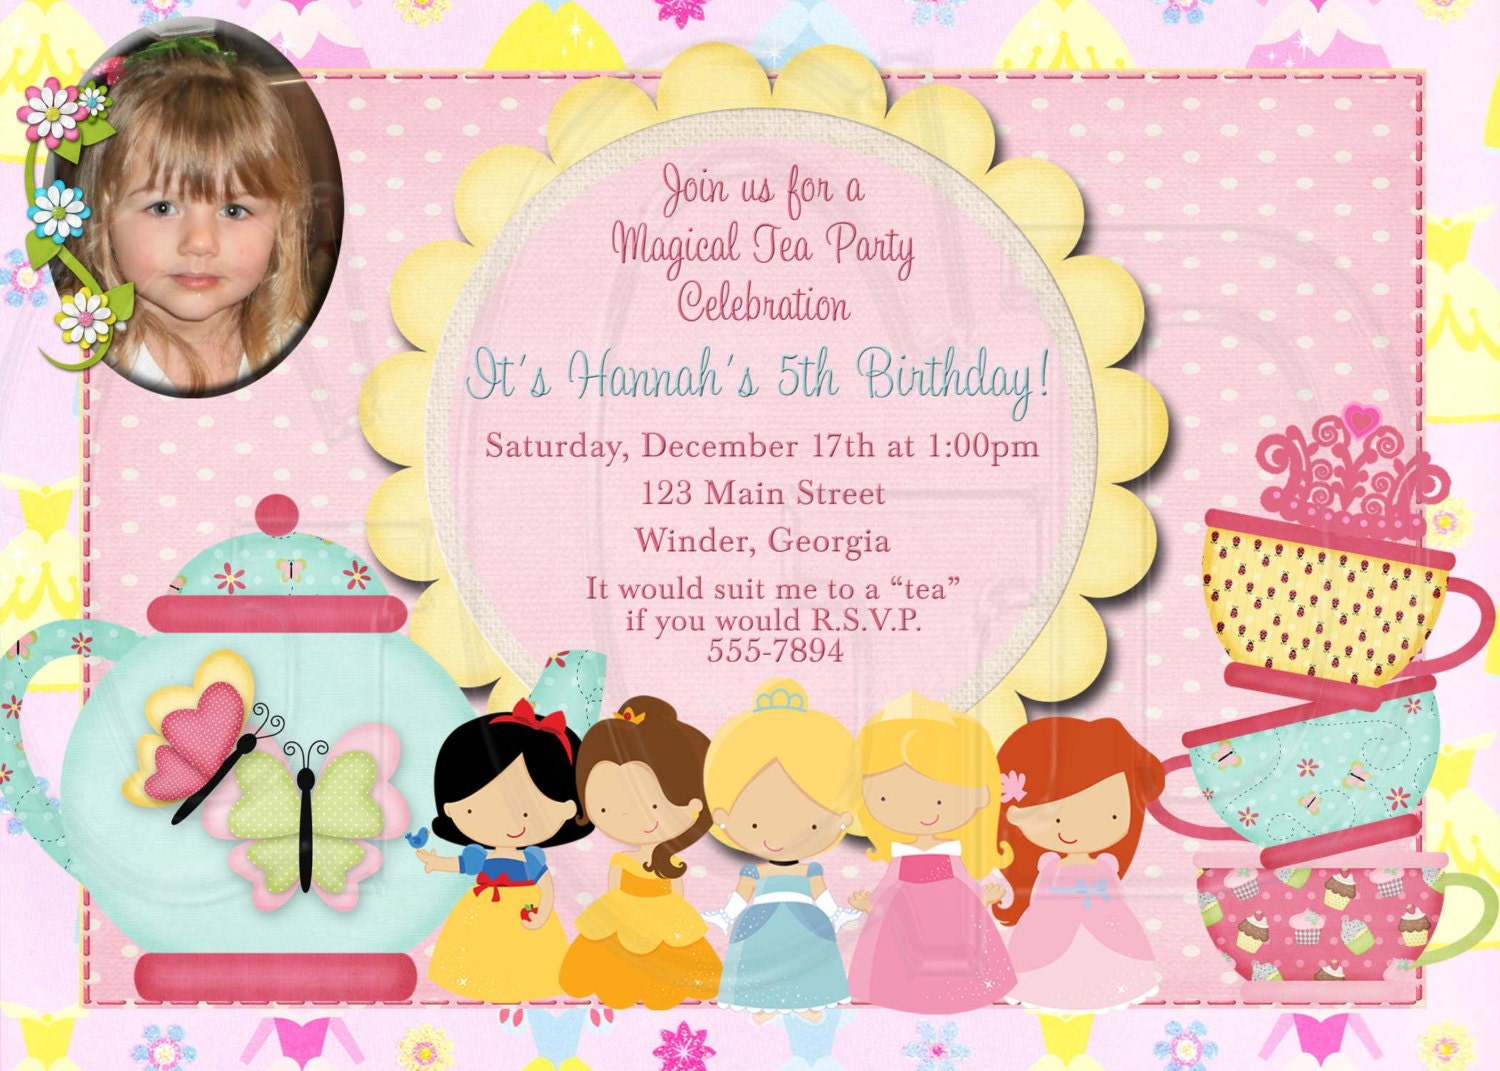 Princess Tea Party Invitations for your inspiration to make invitation template look beautiful